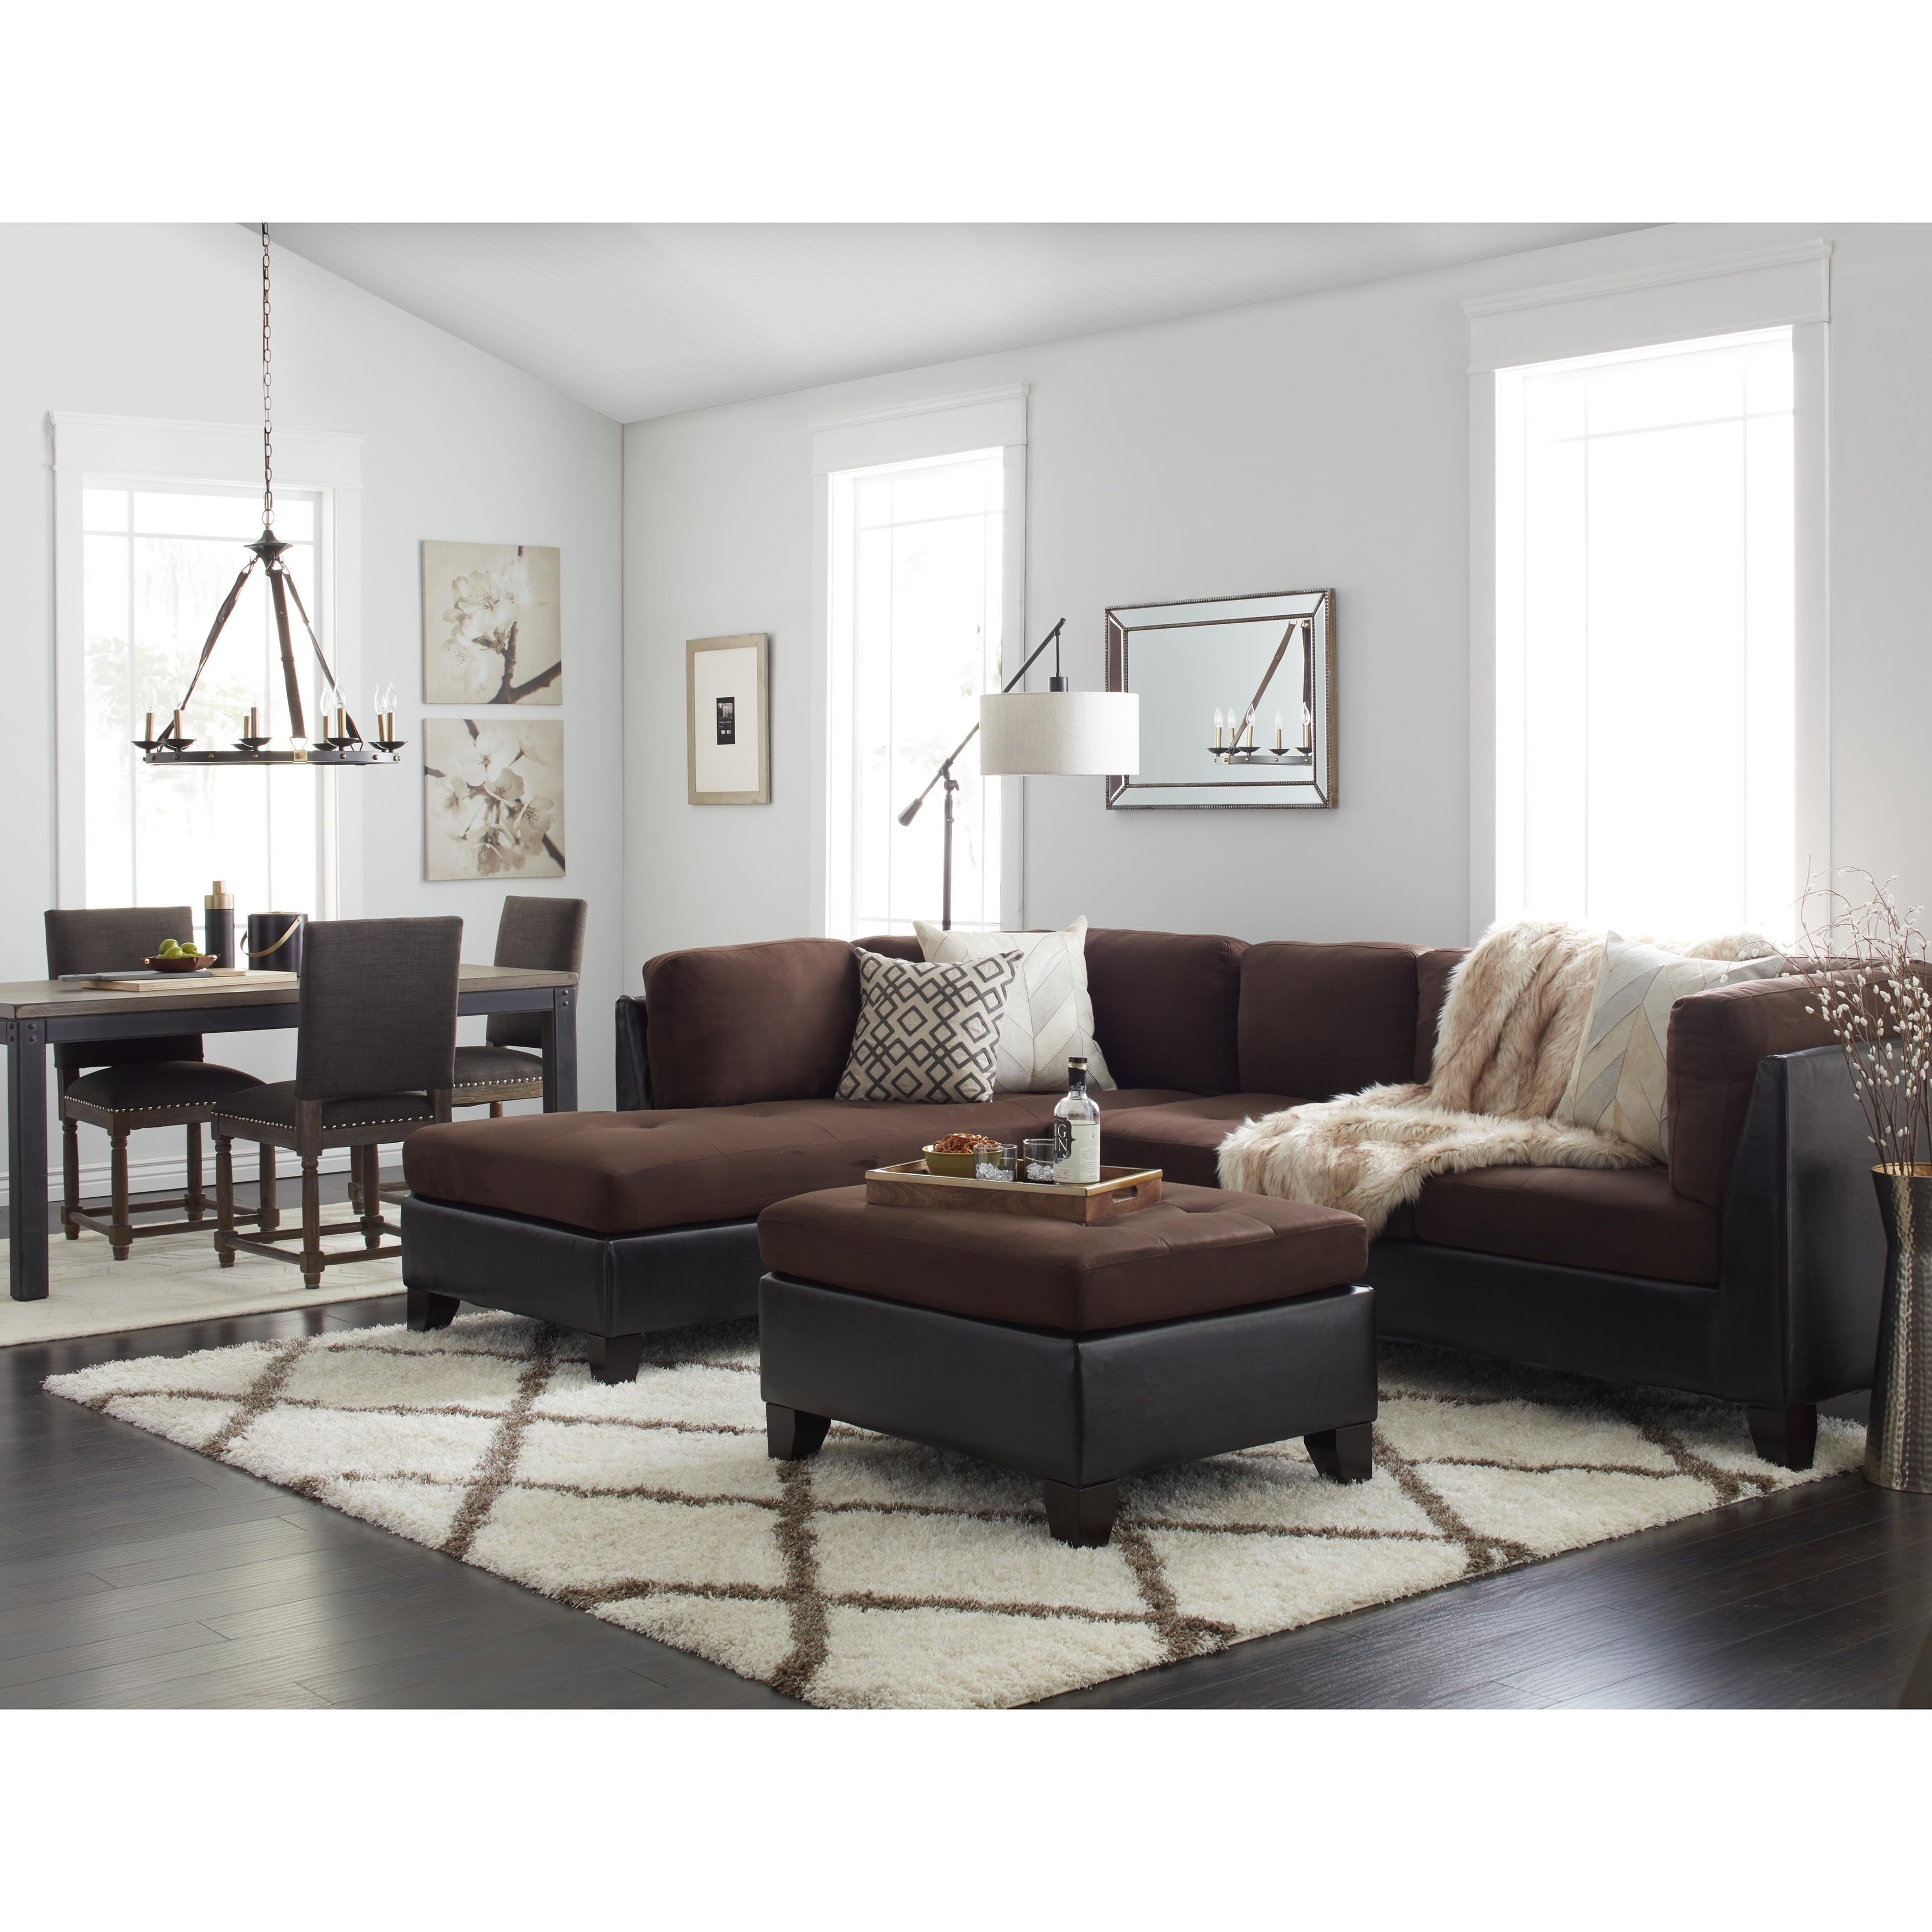 Abbyson Charlotte Dark Brown Sectional Sofa and Ottoman - Free ...